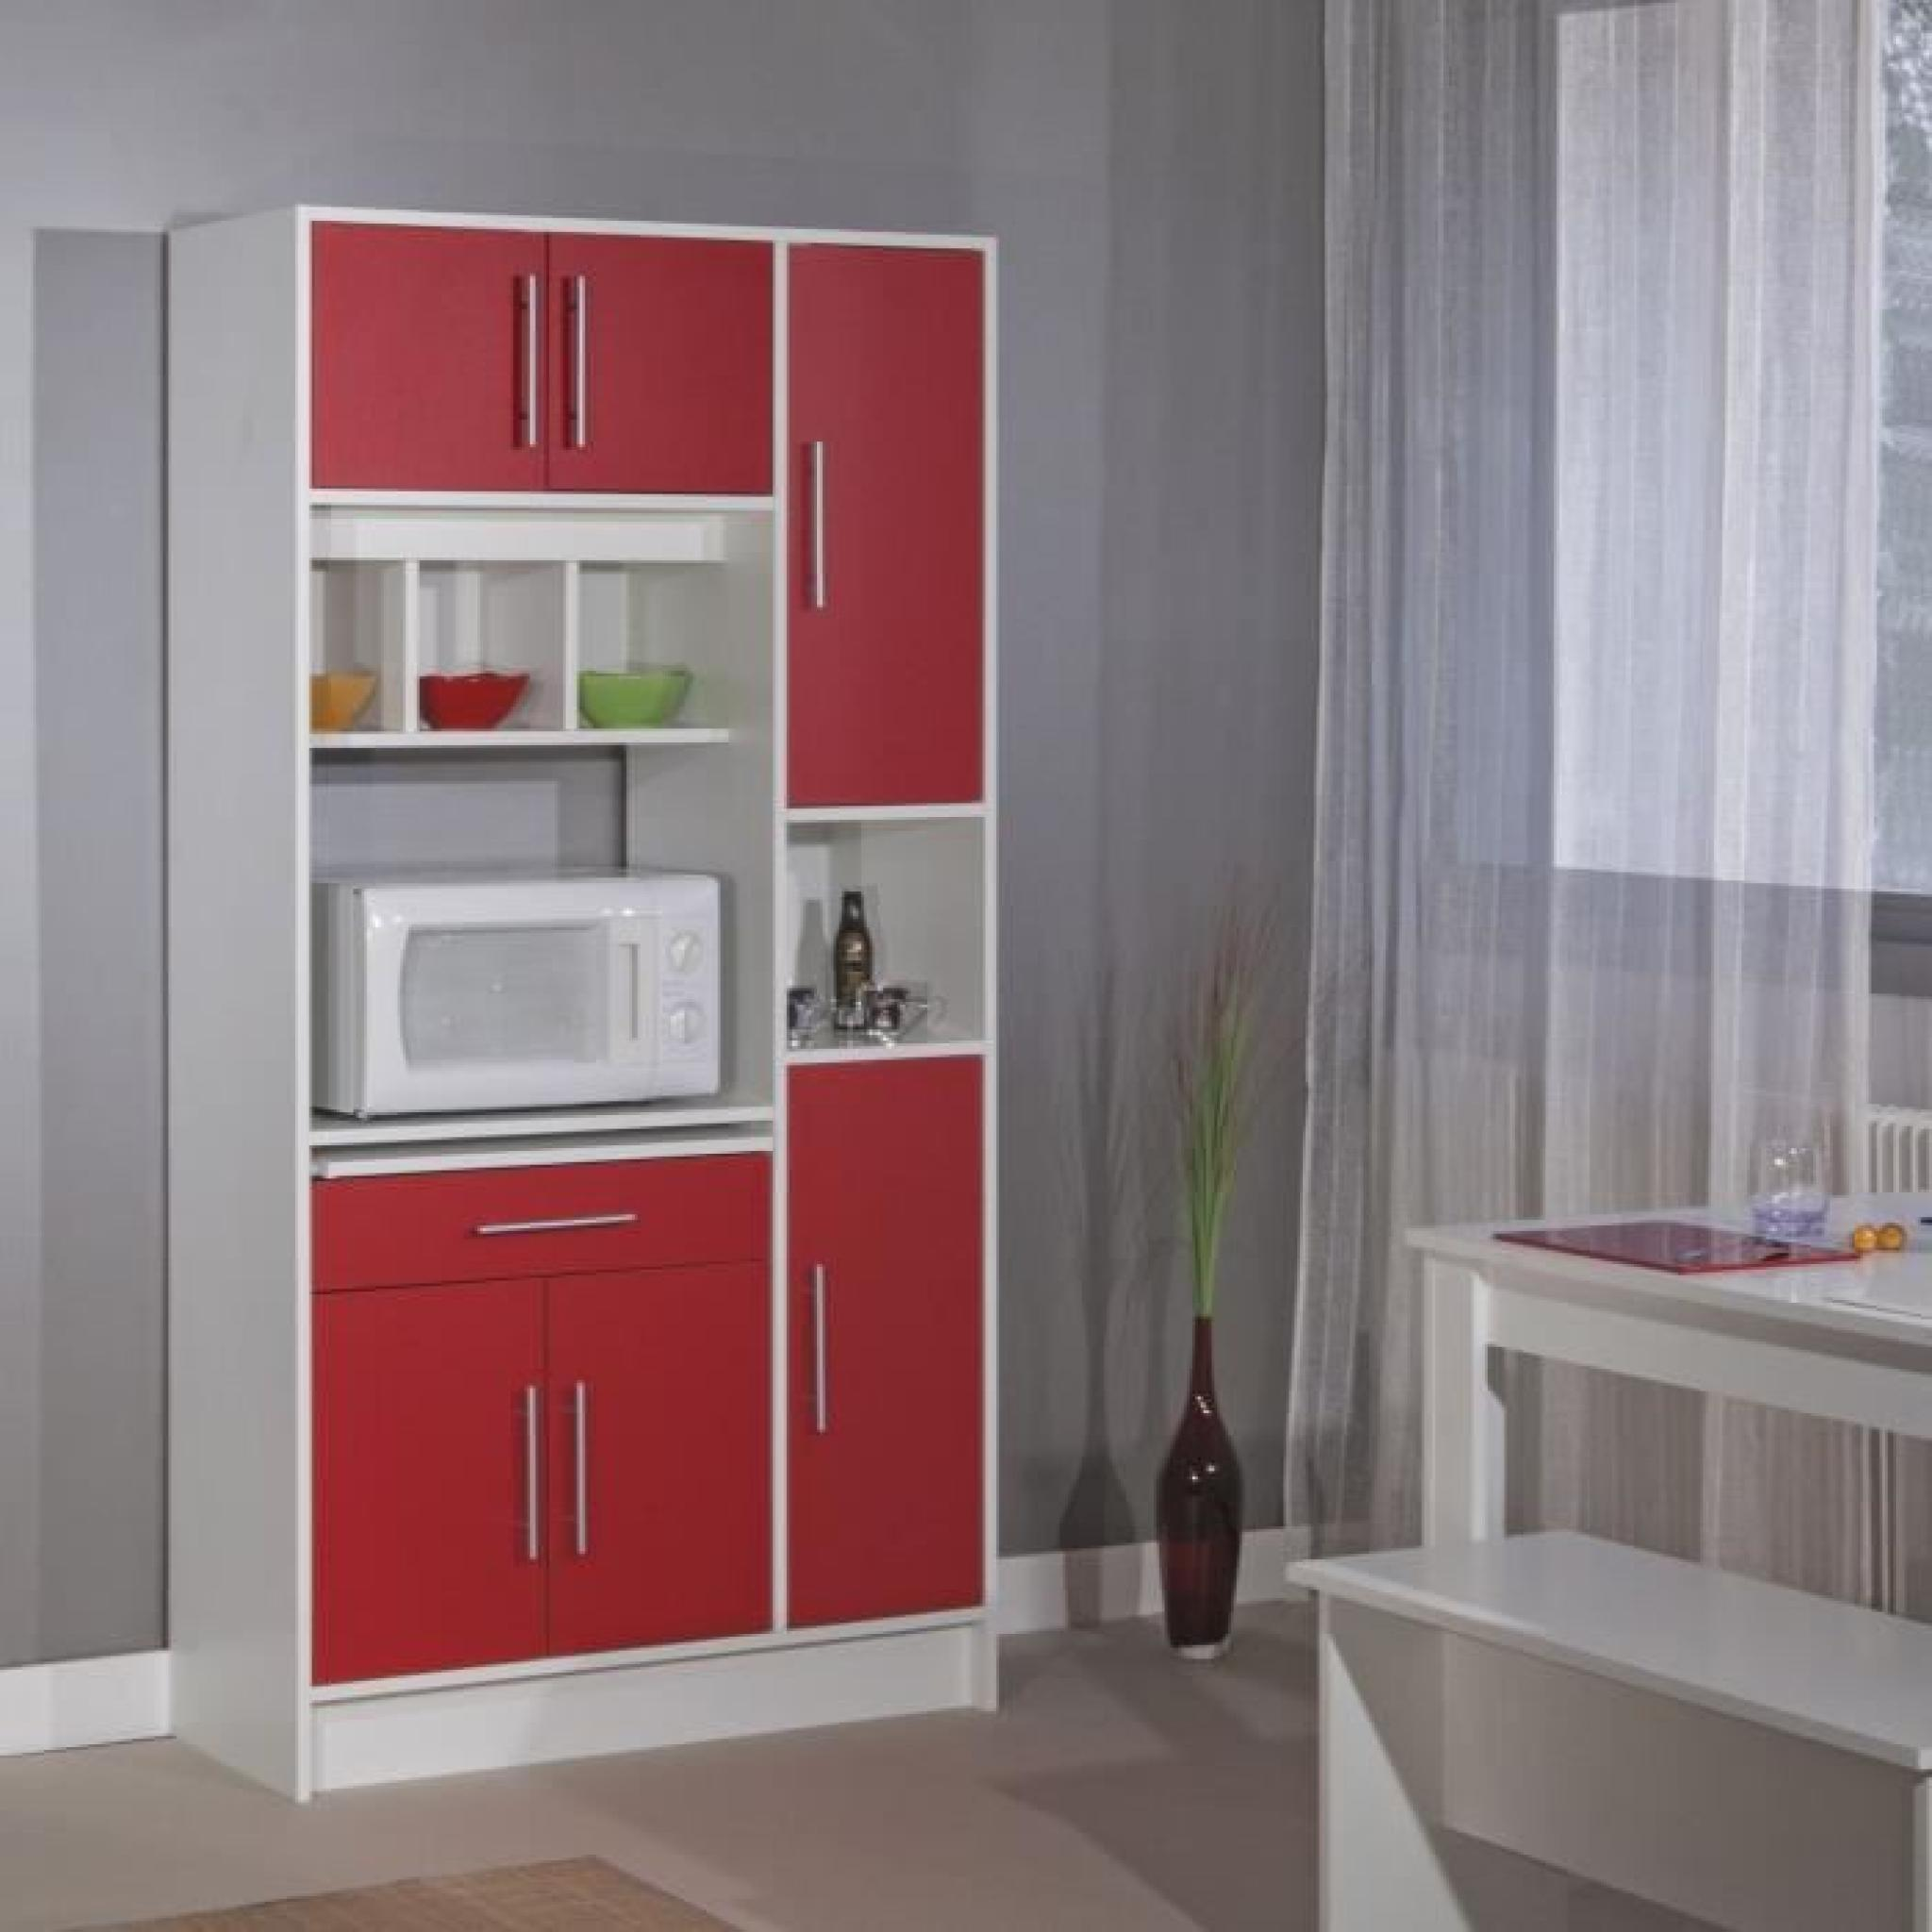 meuble de cuisine rouge pas cher meuble cuisine sur mesure pas cher 12 pau rouge inoui cuisine. Black Bedroom Furniture Sets. Home Design Ideas